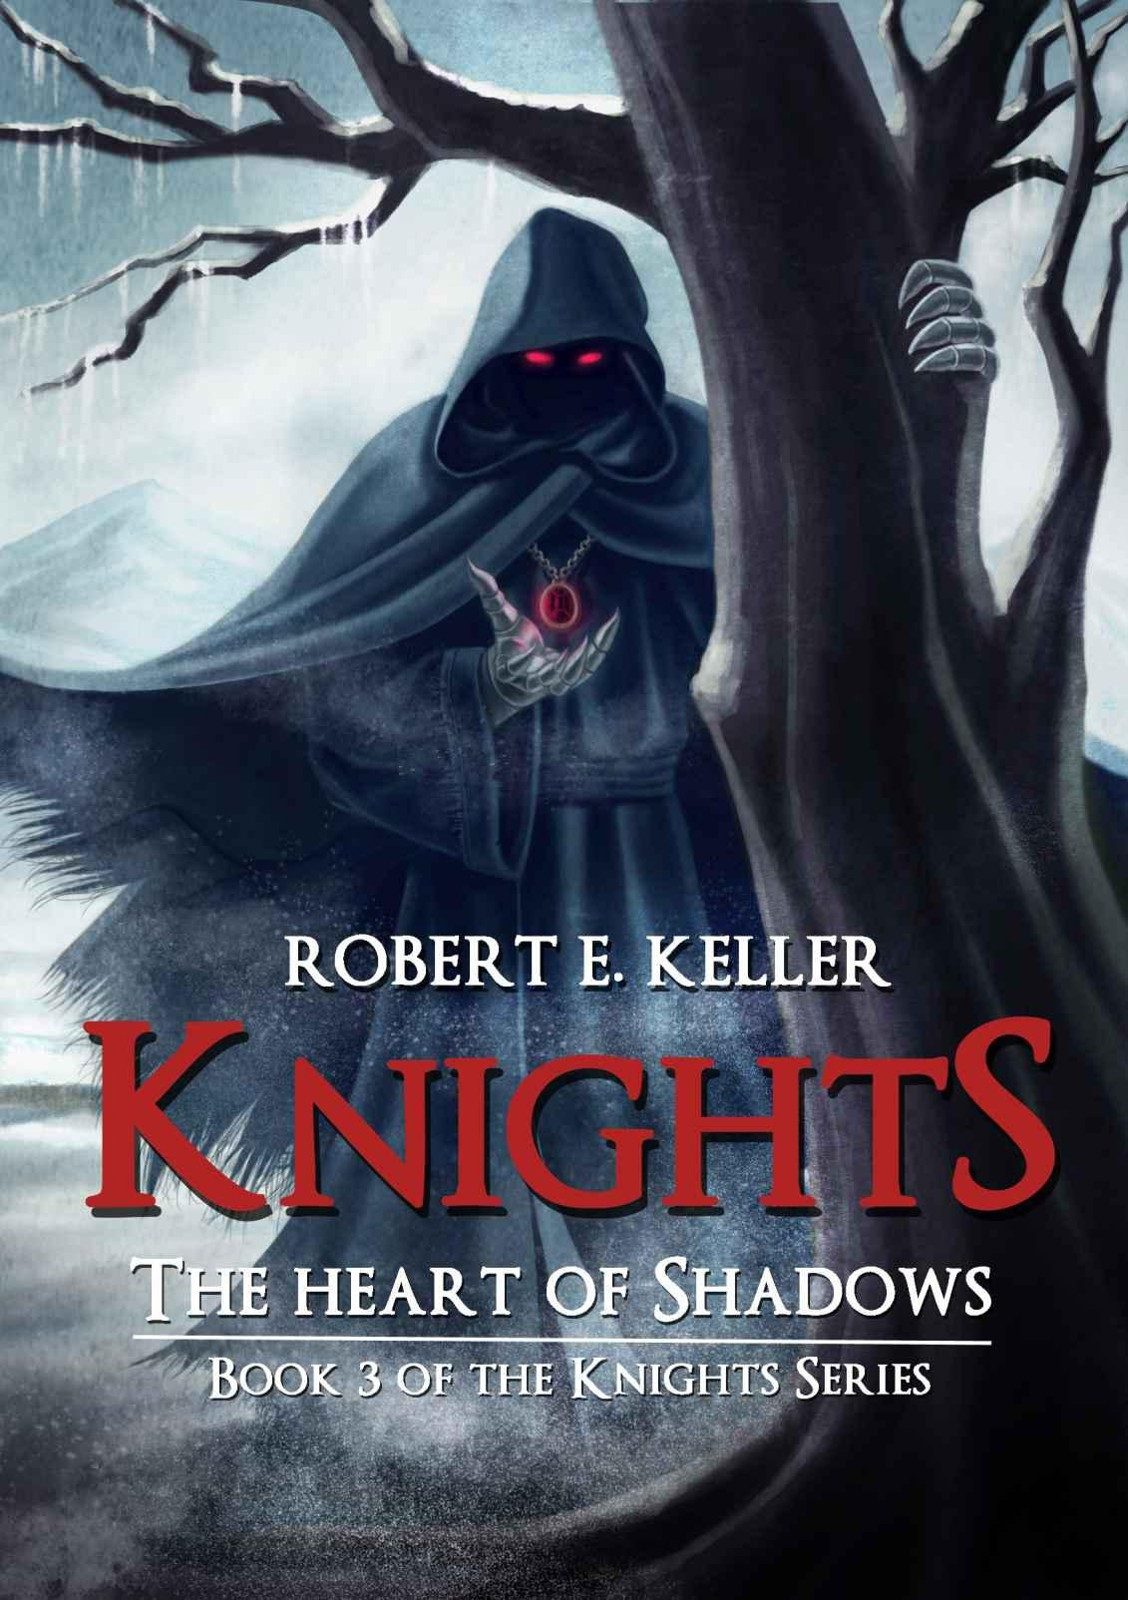 Knights: Book 03 - The Heart of Shadows by Robert E. Keller